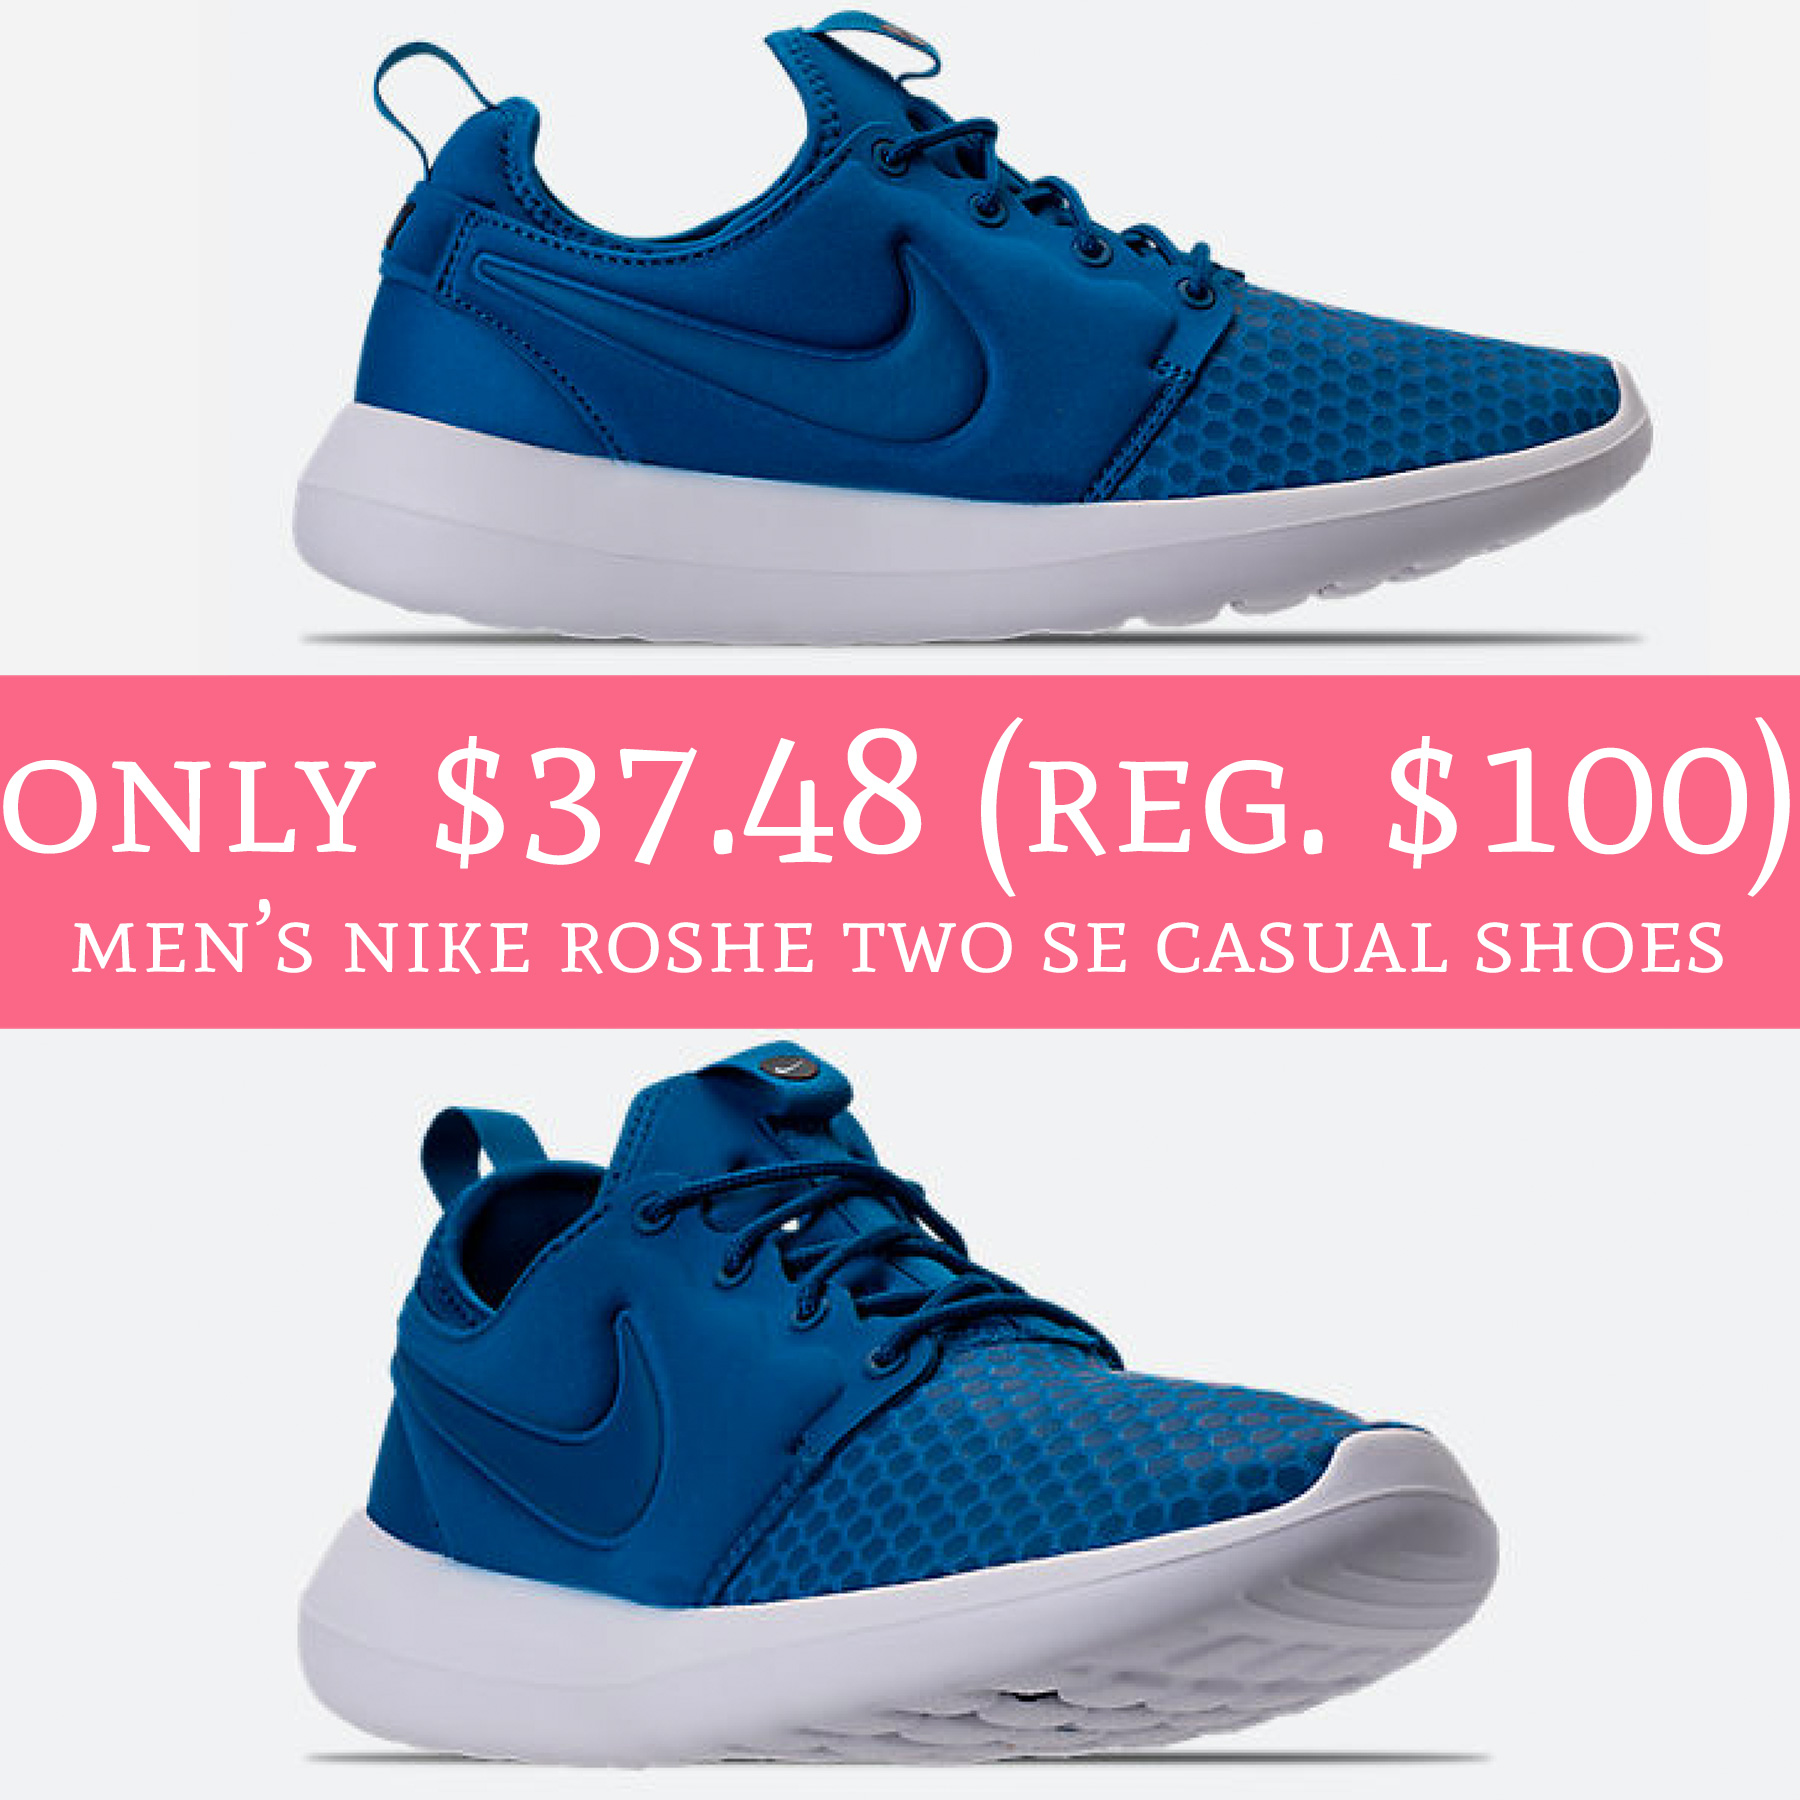 innovative design f4283 991a2 Only $37.48 (Regular $100) Men's Nike Roshe Two SE Casual ...